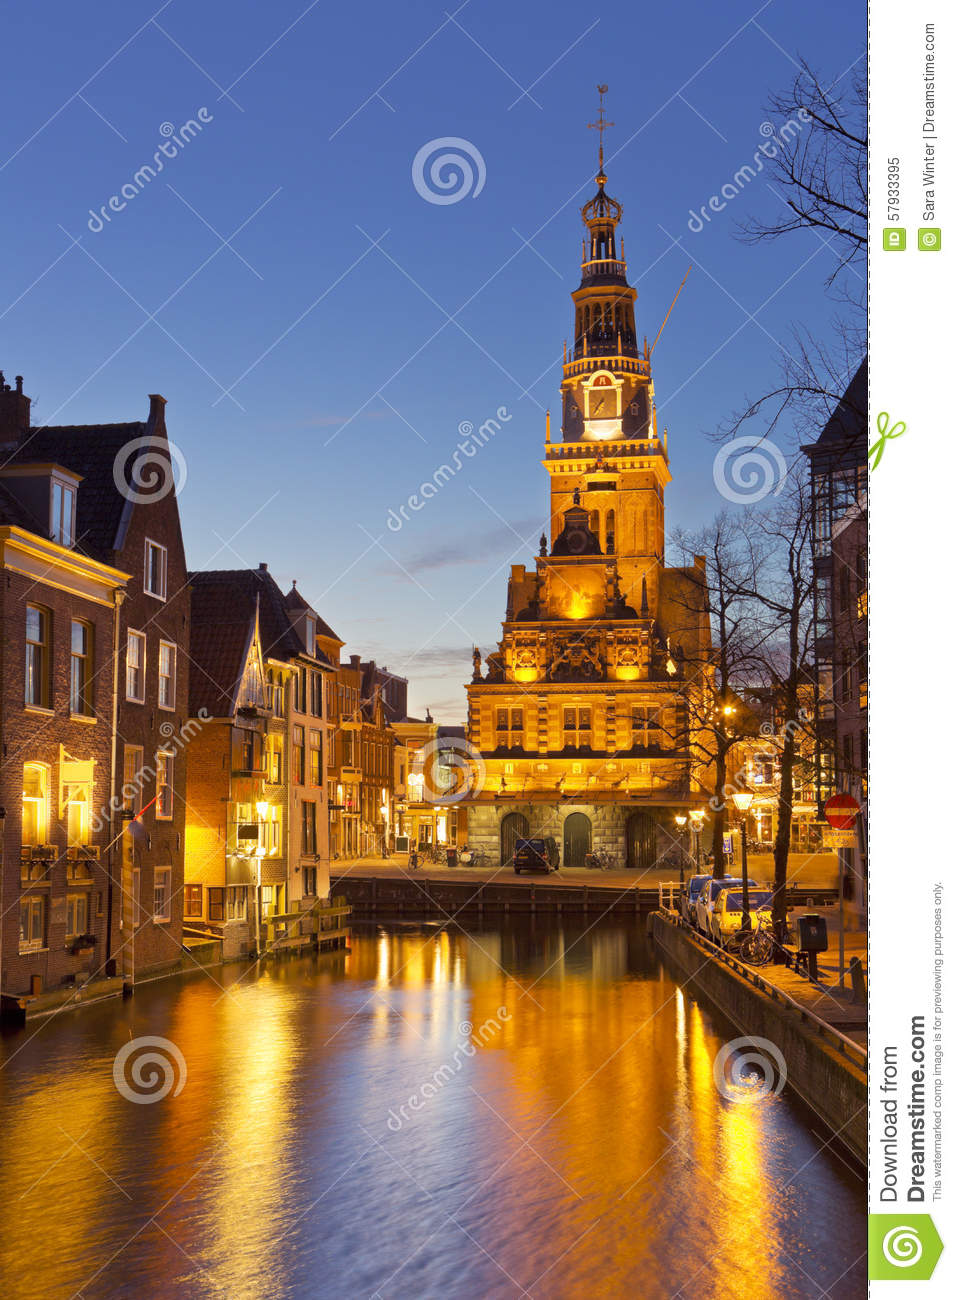 City of Alkmaar, The Netherlands at night